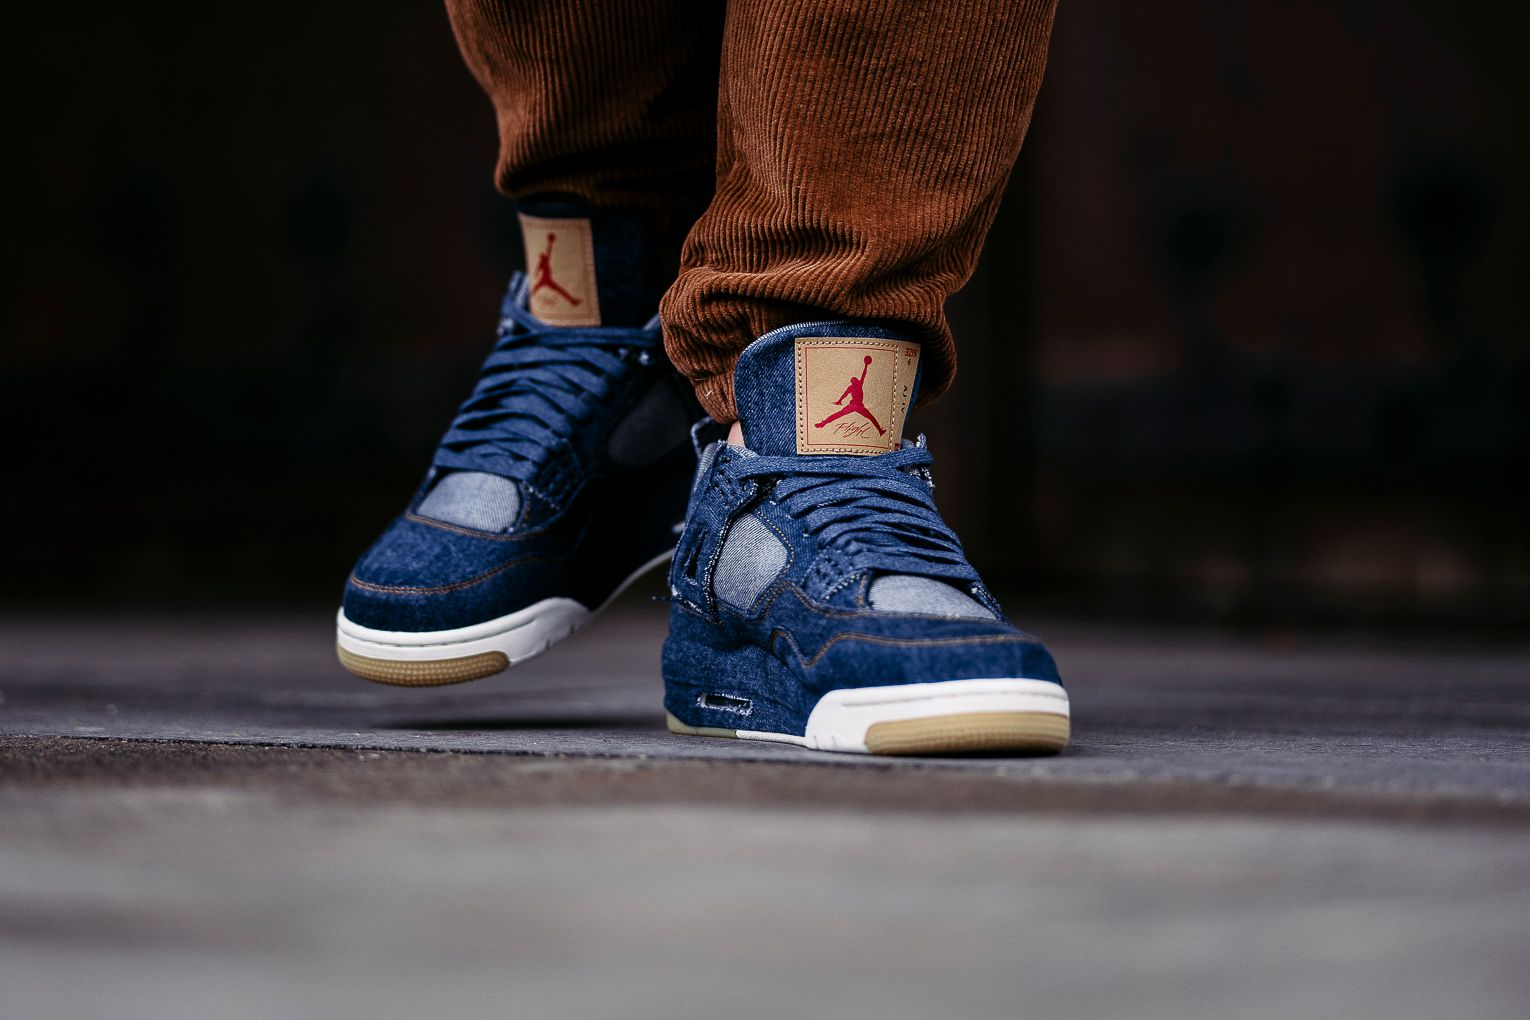 61628bf1015a64 An On-Feet Look At The Levi s x Air Jordan 4 Denim